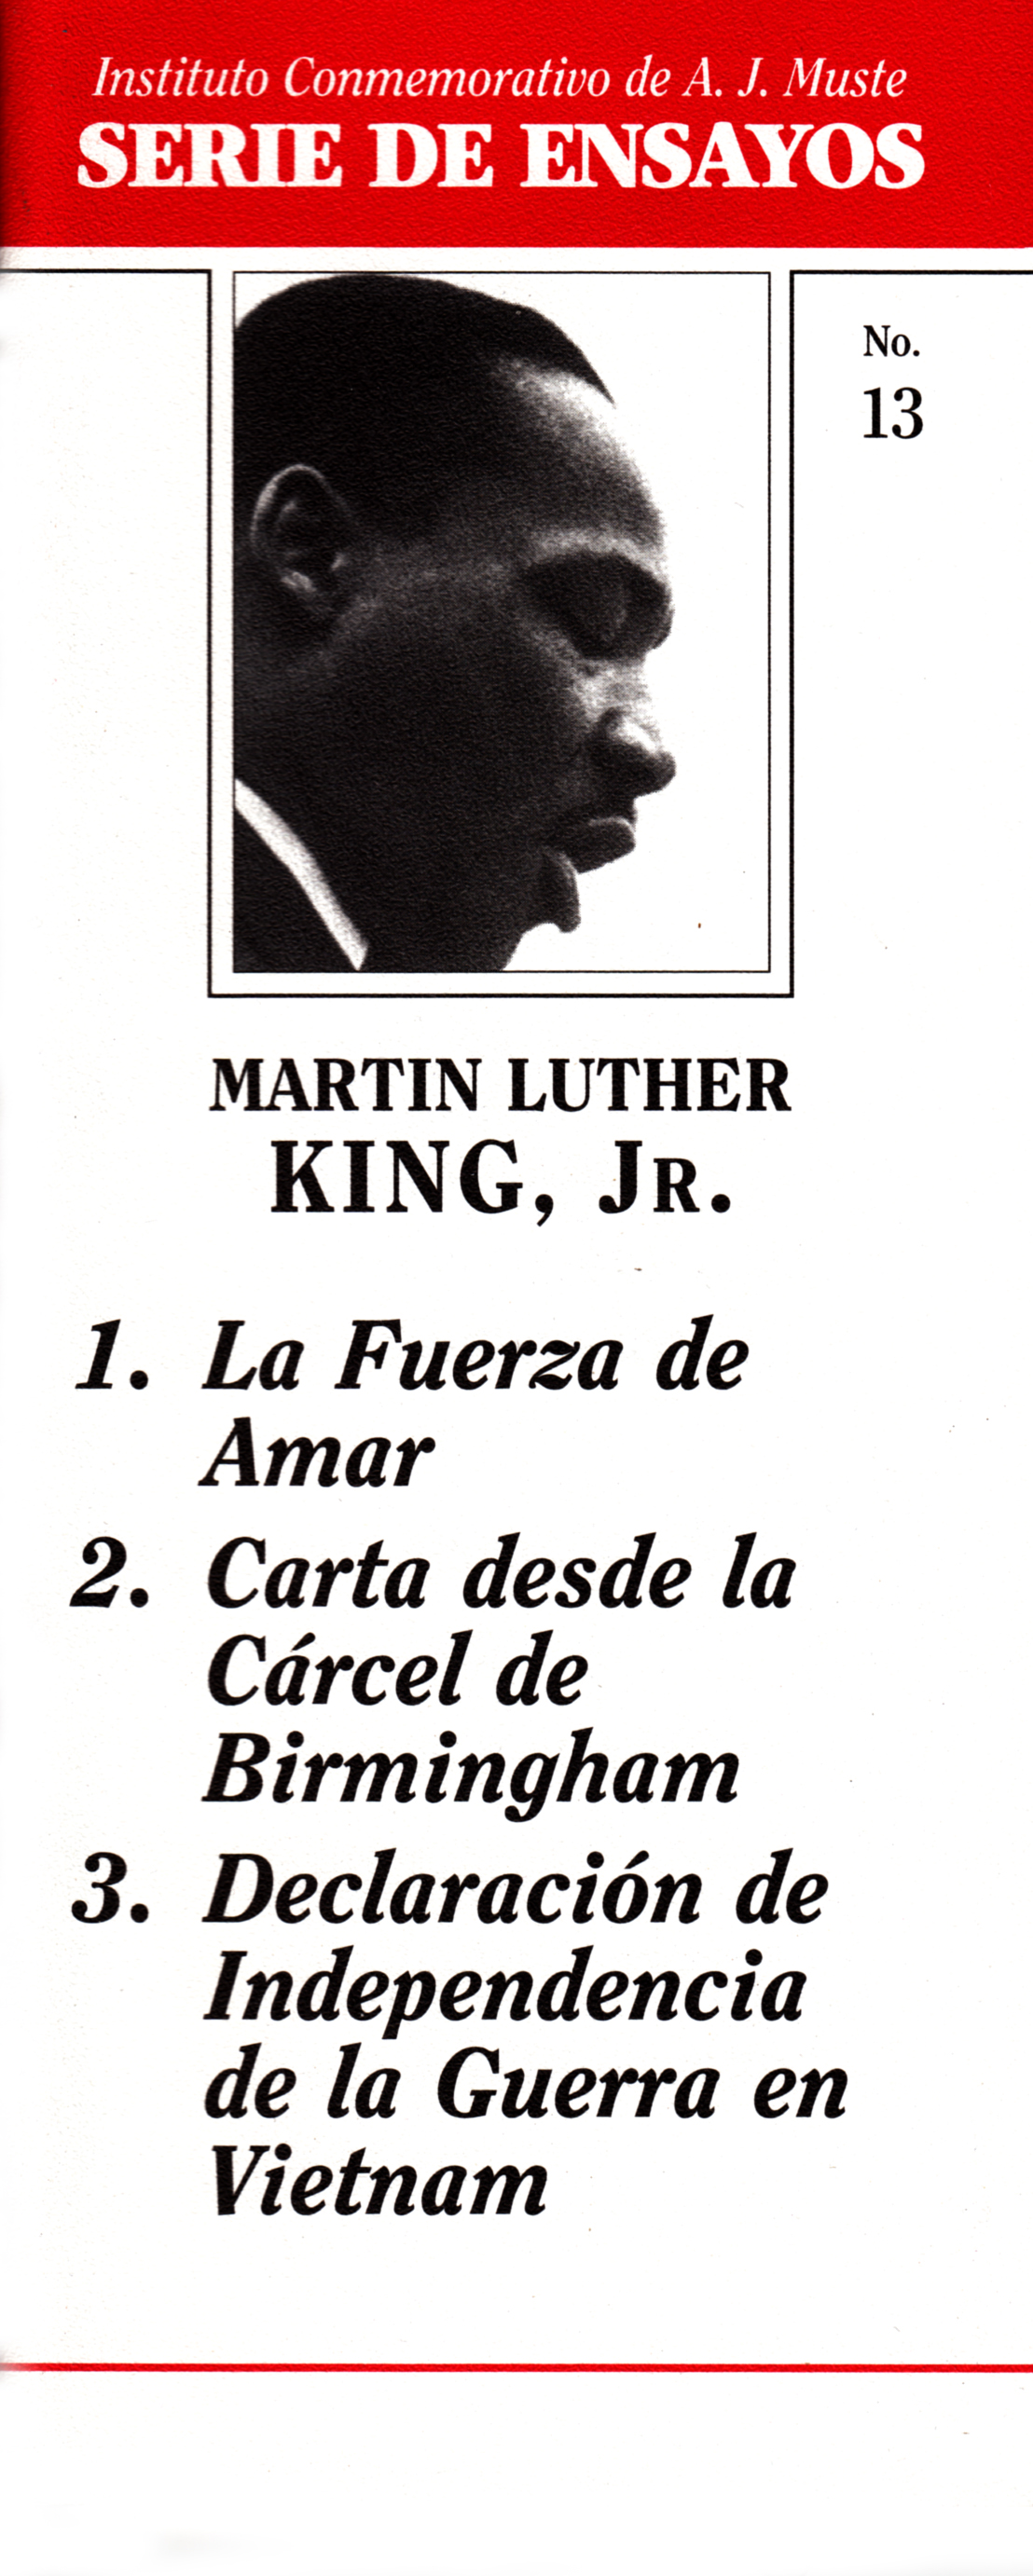 Research paper outline on martin luther king jr